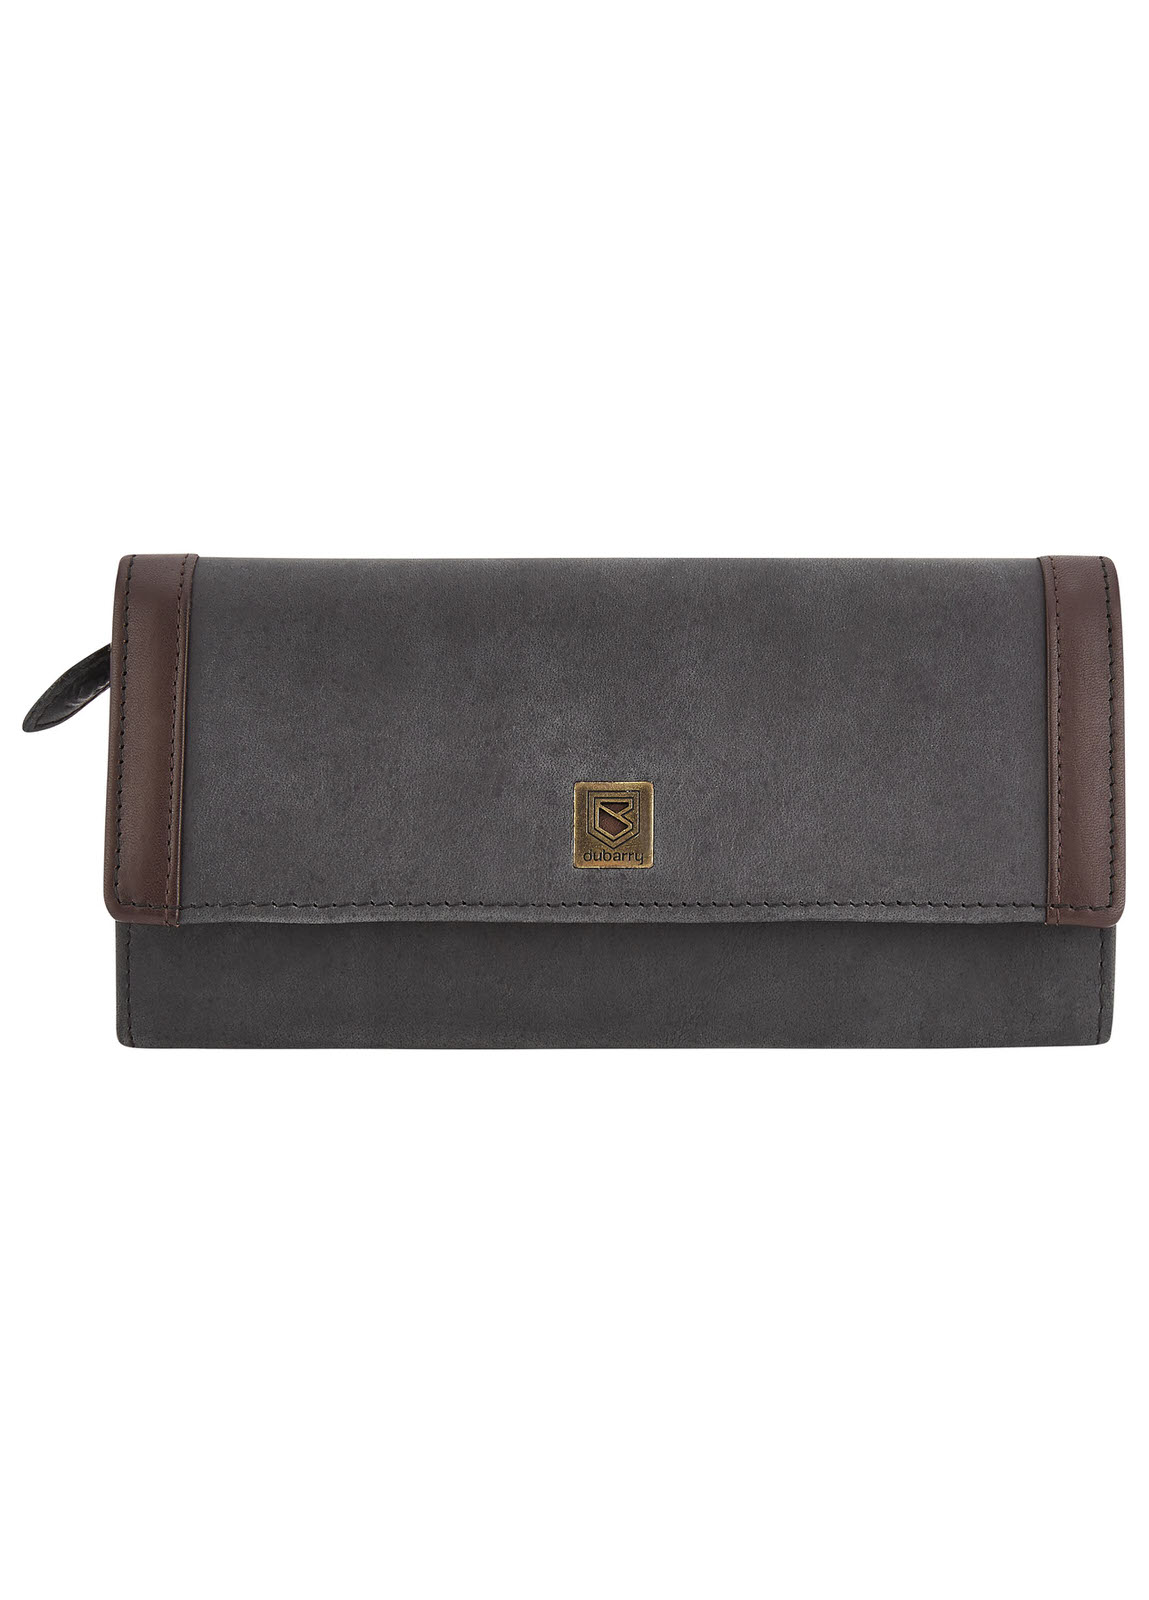 Collinstown_Leather_Wallet_Black/Brown_Image_1